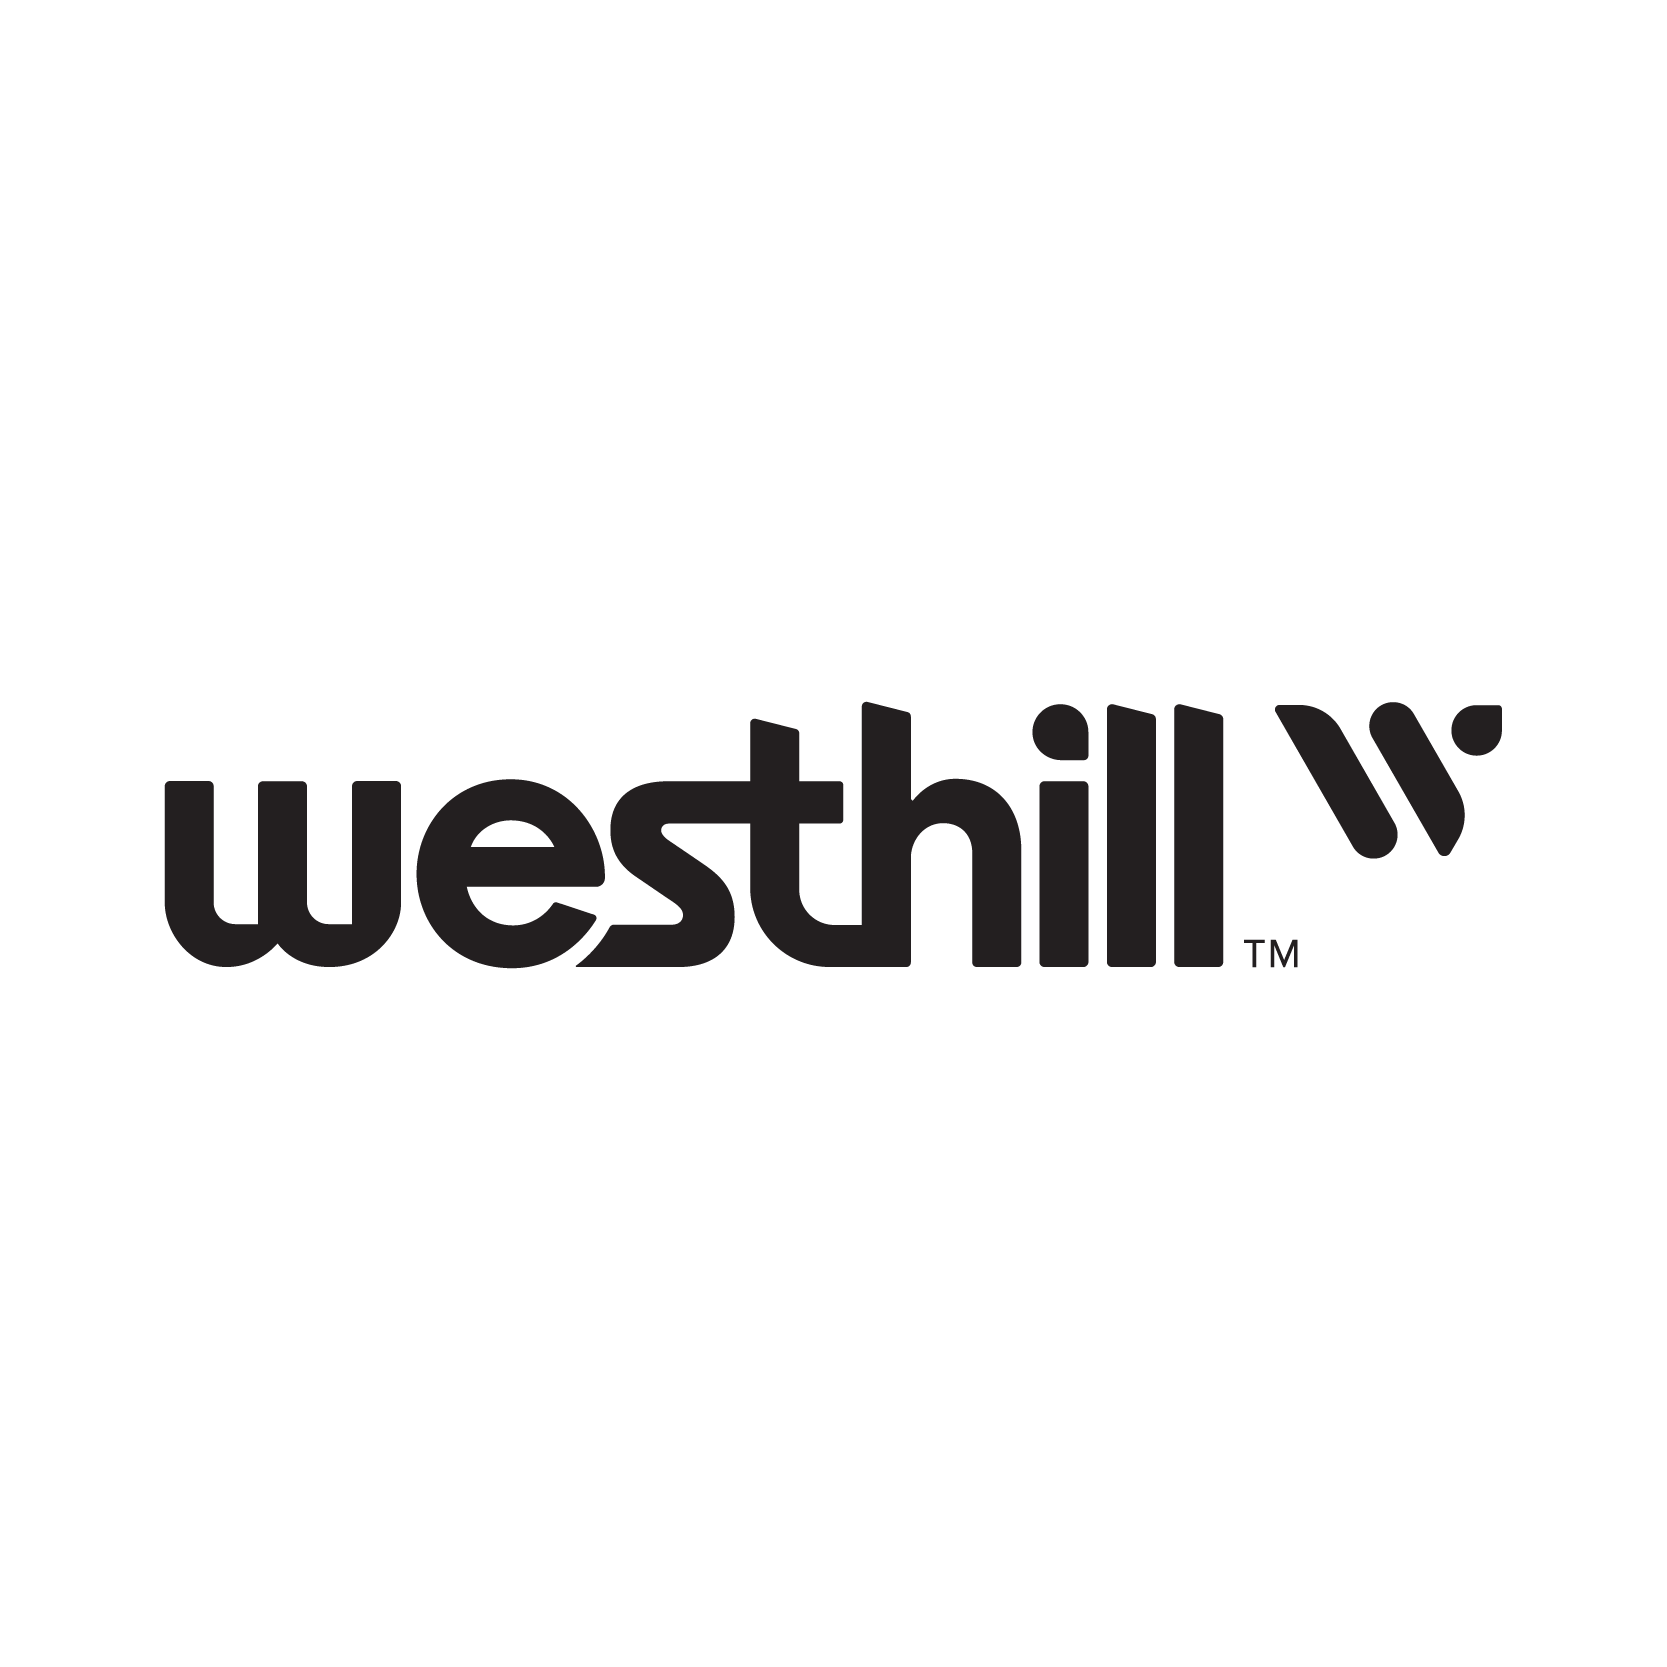 Westhill Client Logo